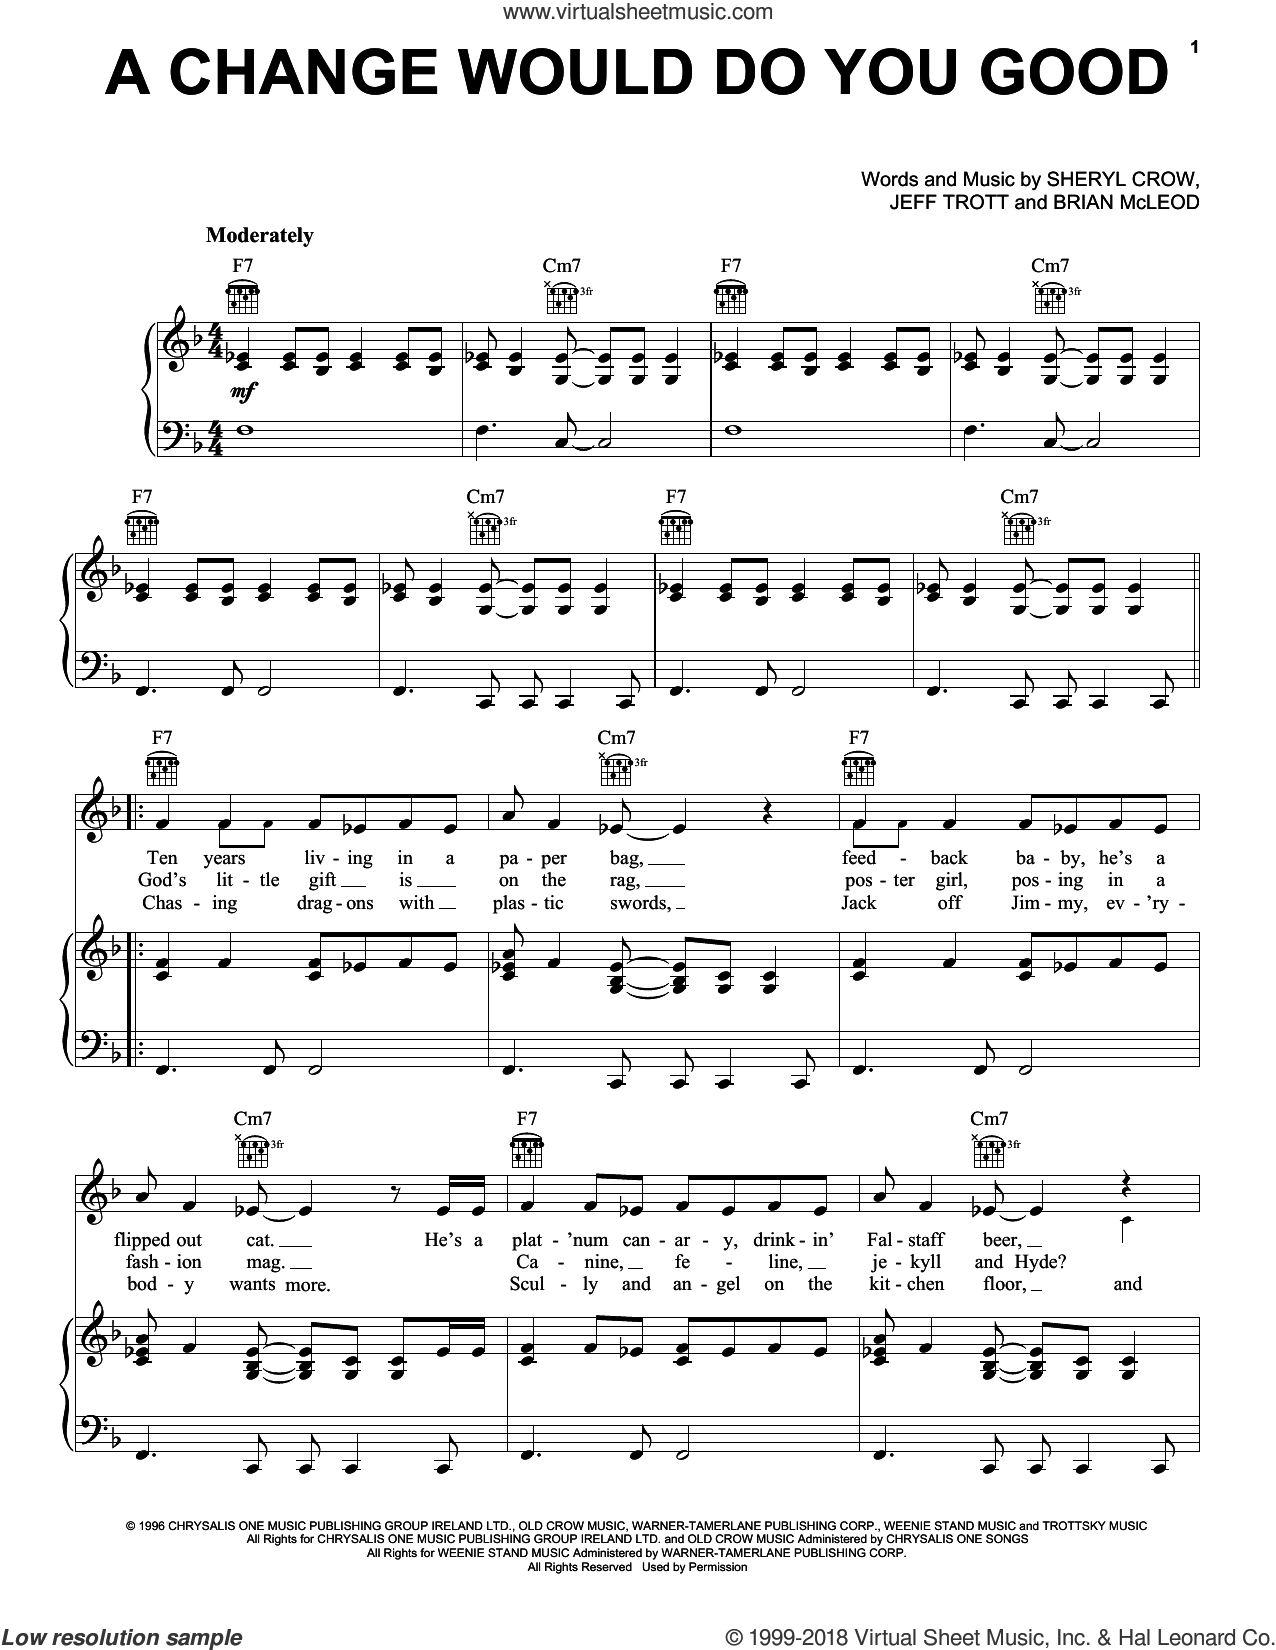 A Change Would Do You Good sheet music for voice, piano or guitar by Jeff Trott